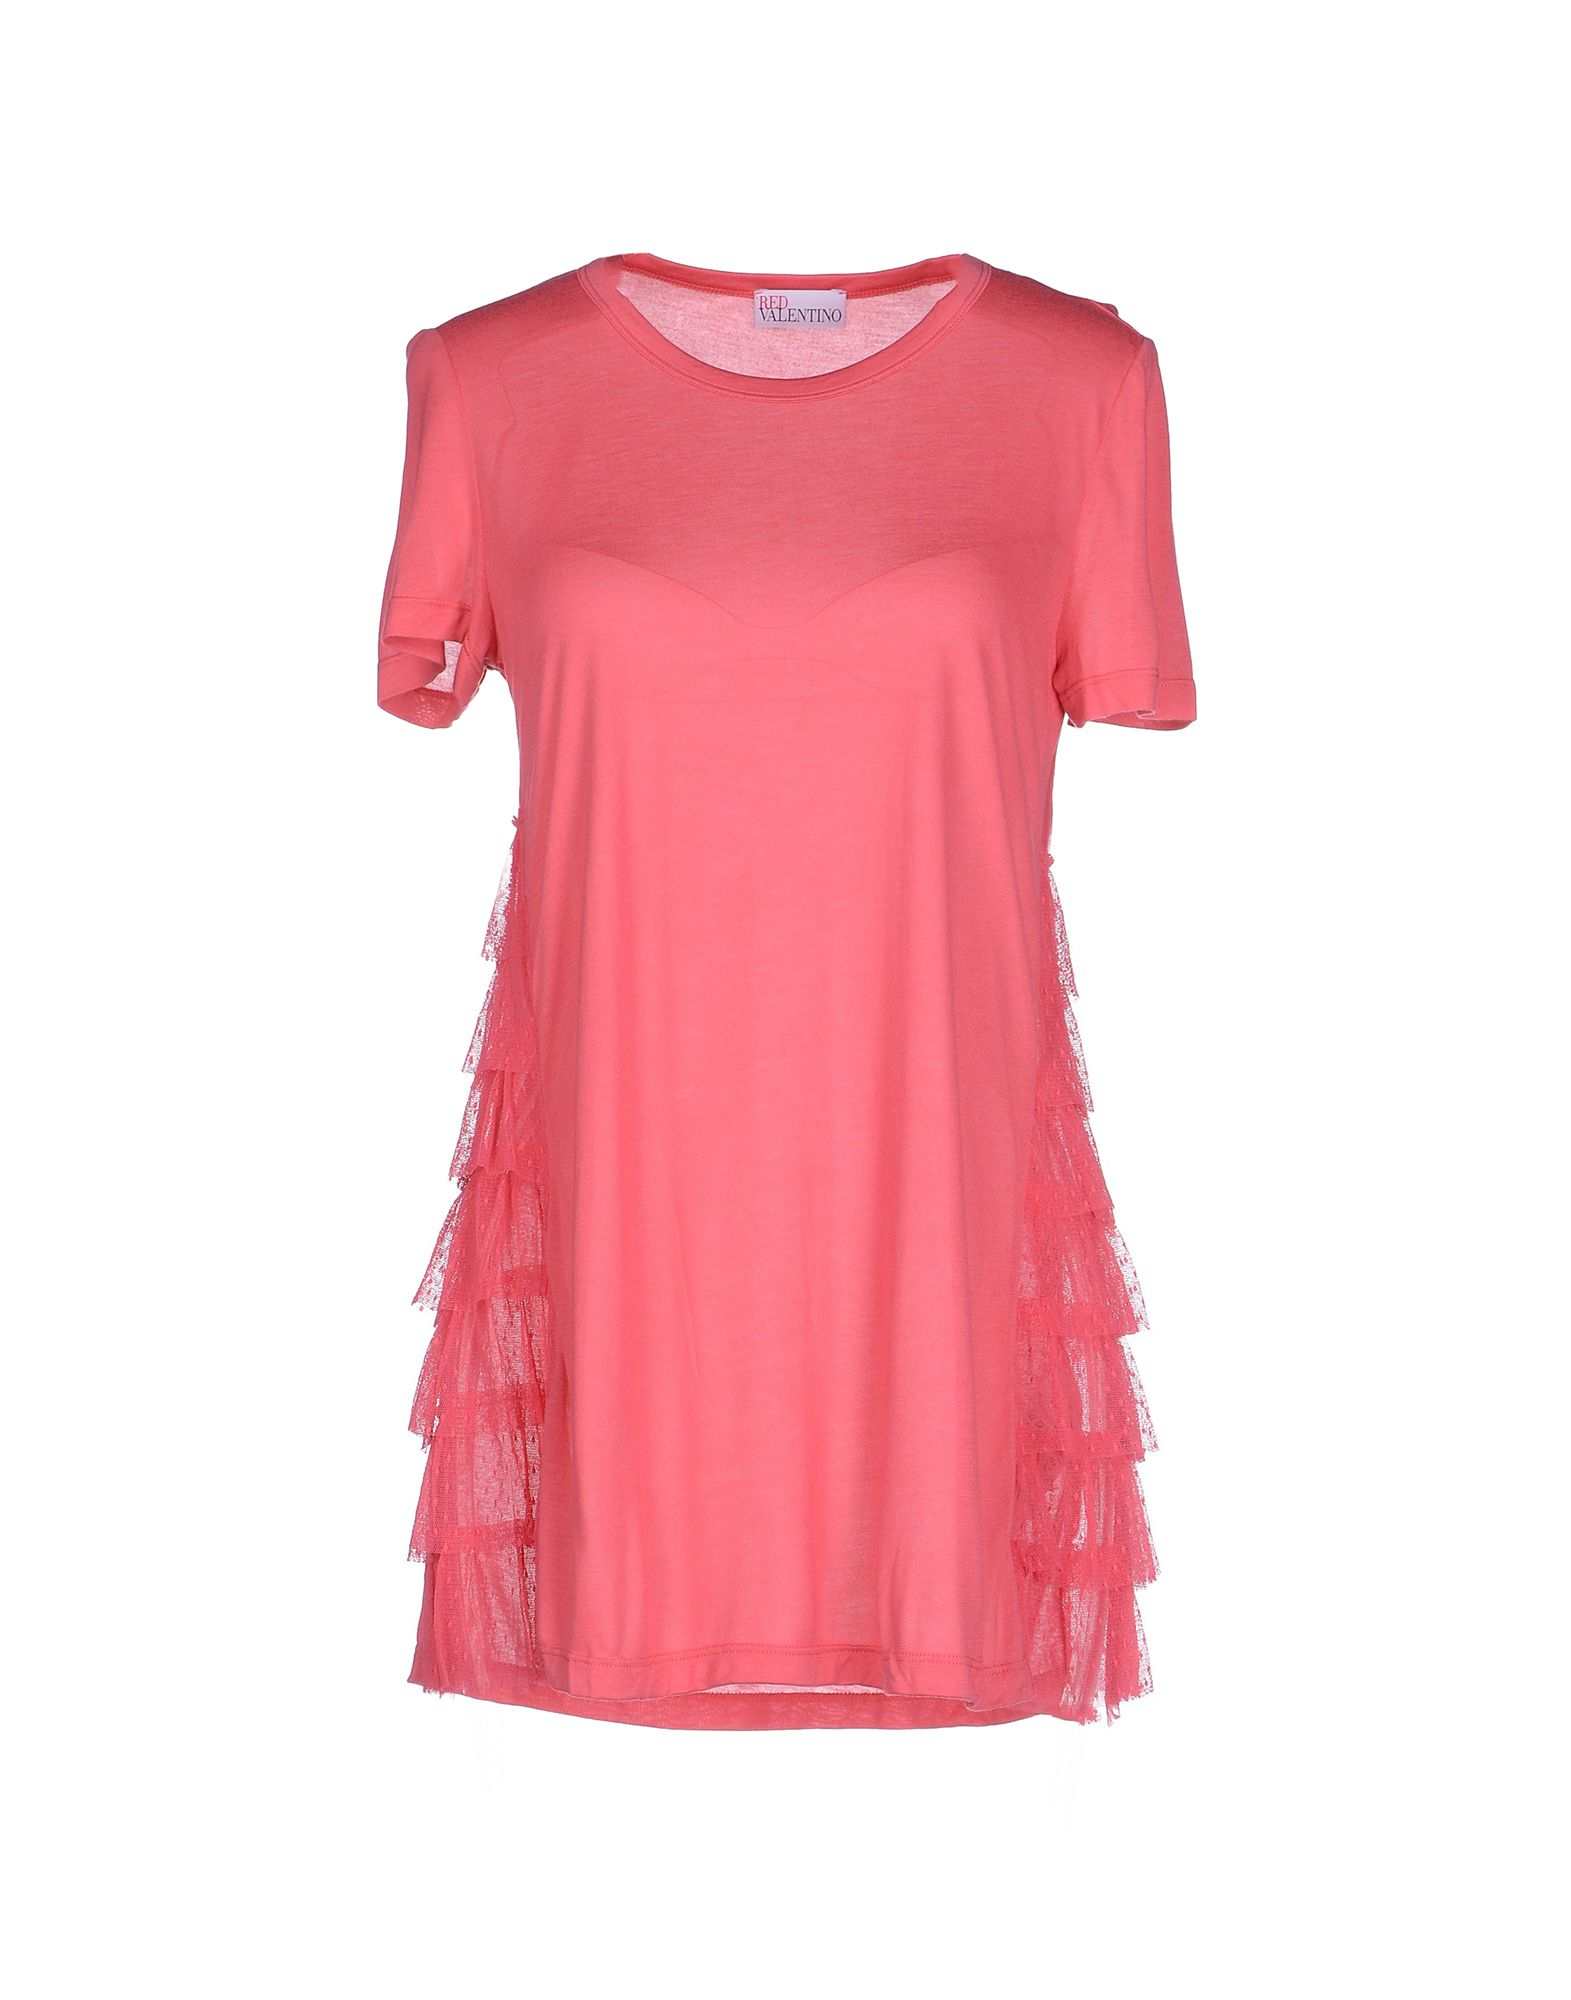 Red valentino t shirt in pink lyst for Red valentino t shirt